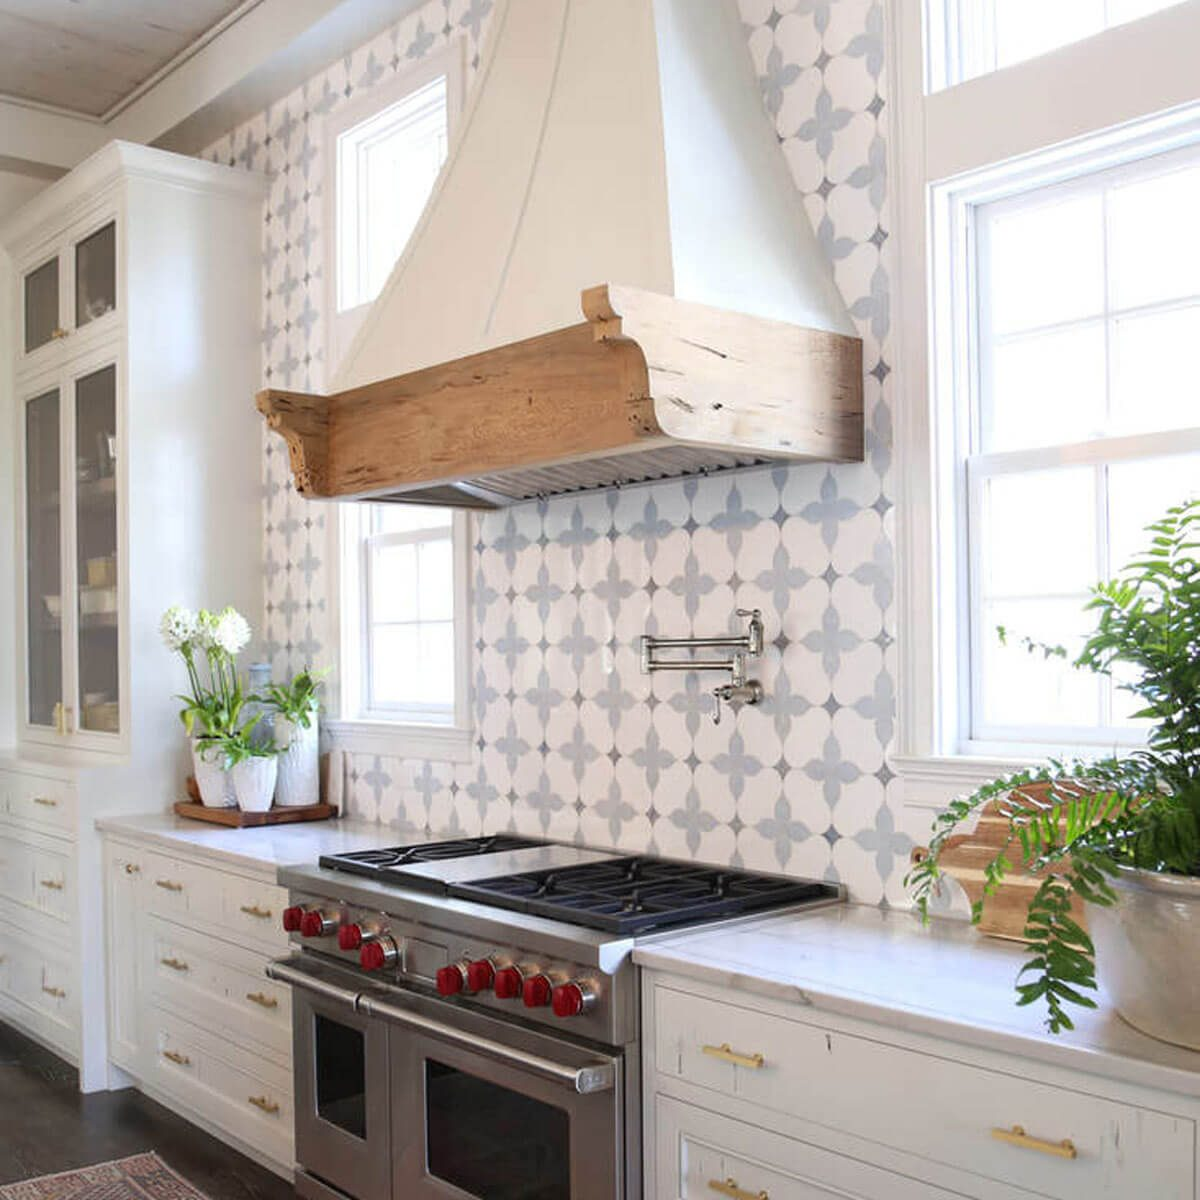 14 Showstopping Tile Backsplash Ideas To Suit Any Style Family